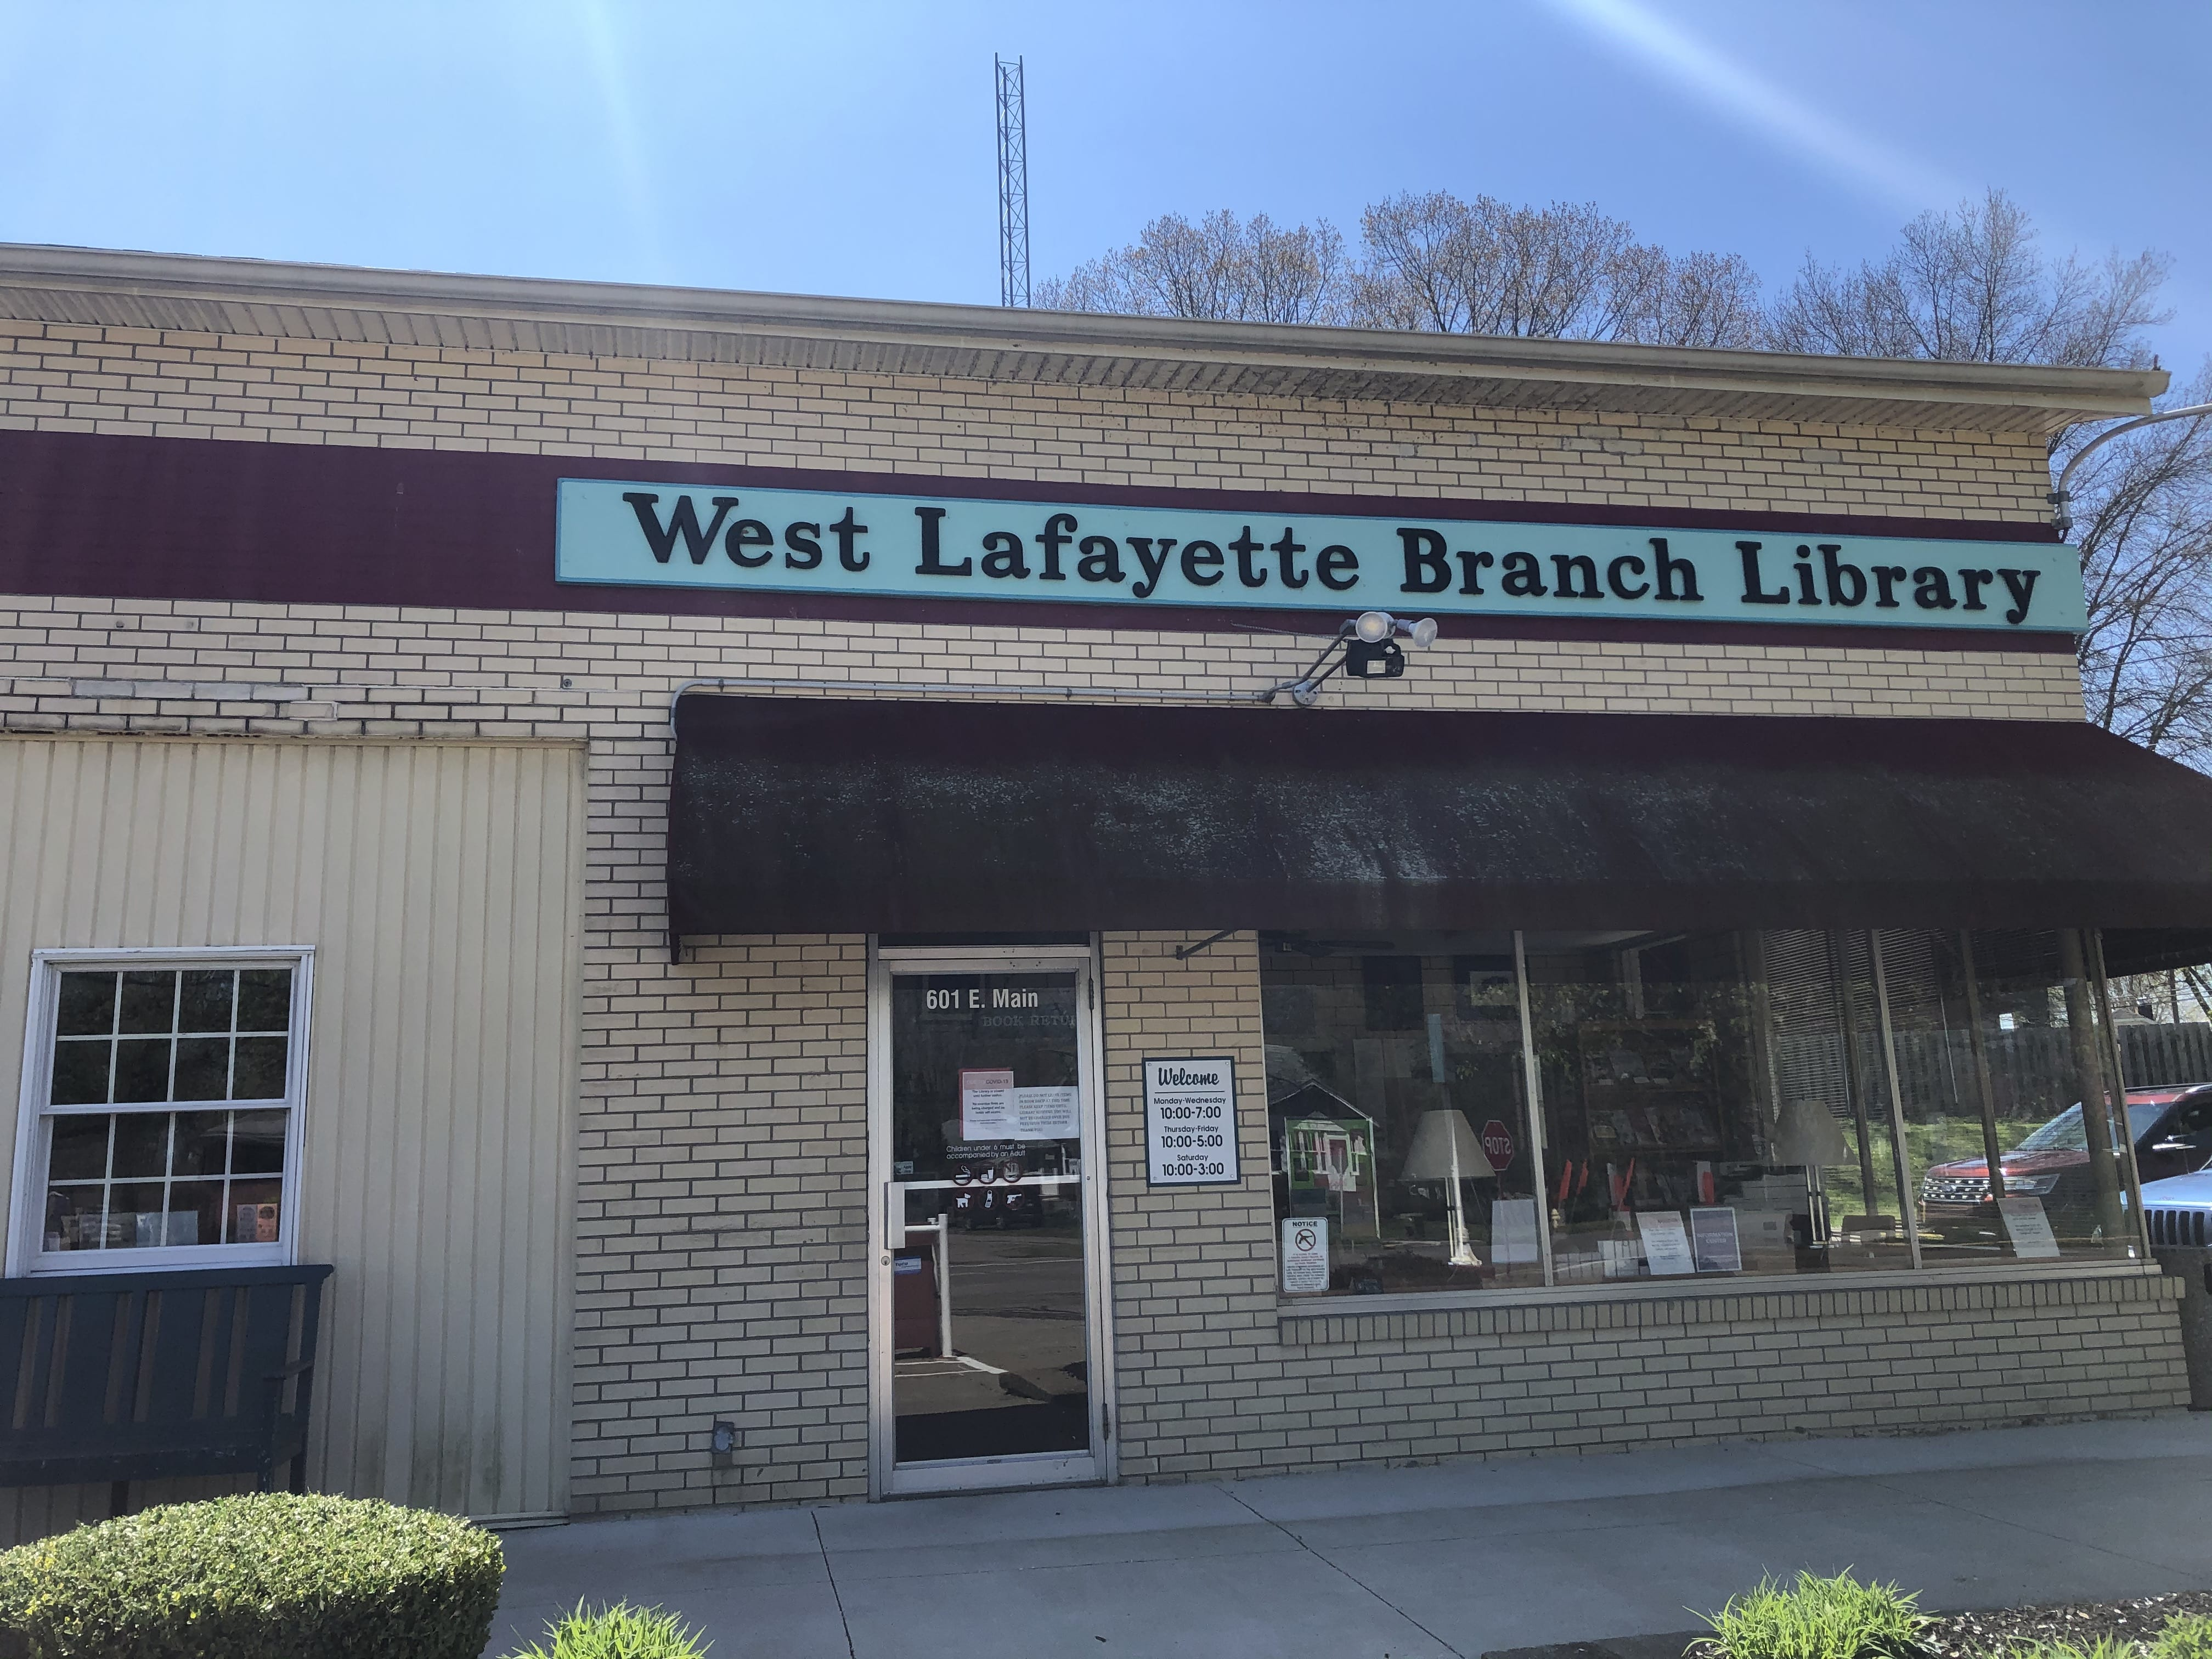 West Lafayette Branch Library